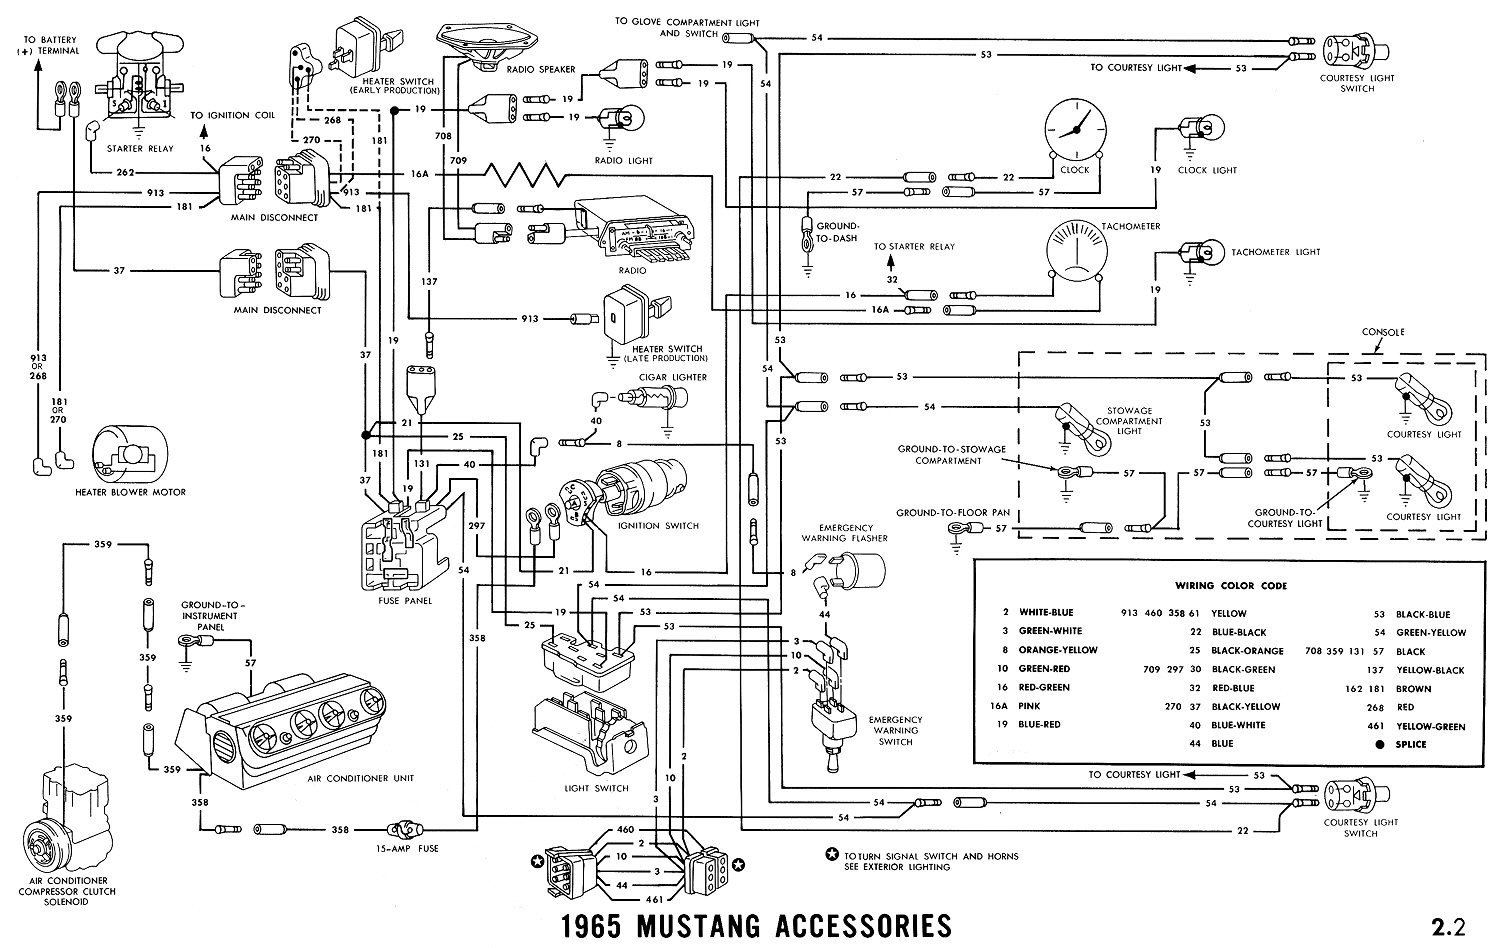 1965i 1965 mustang wiring diagrams average joe restoration blinker wiring diagram at sewacar.co